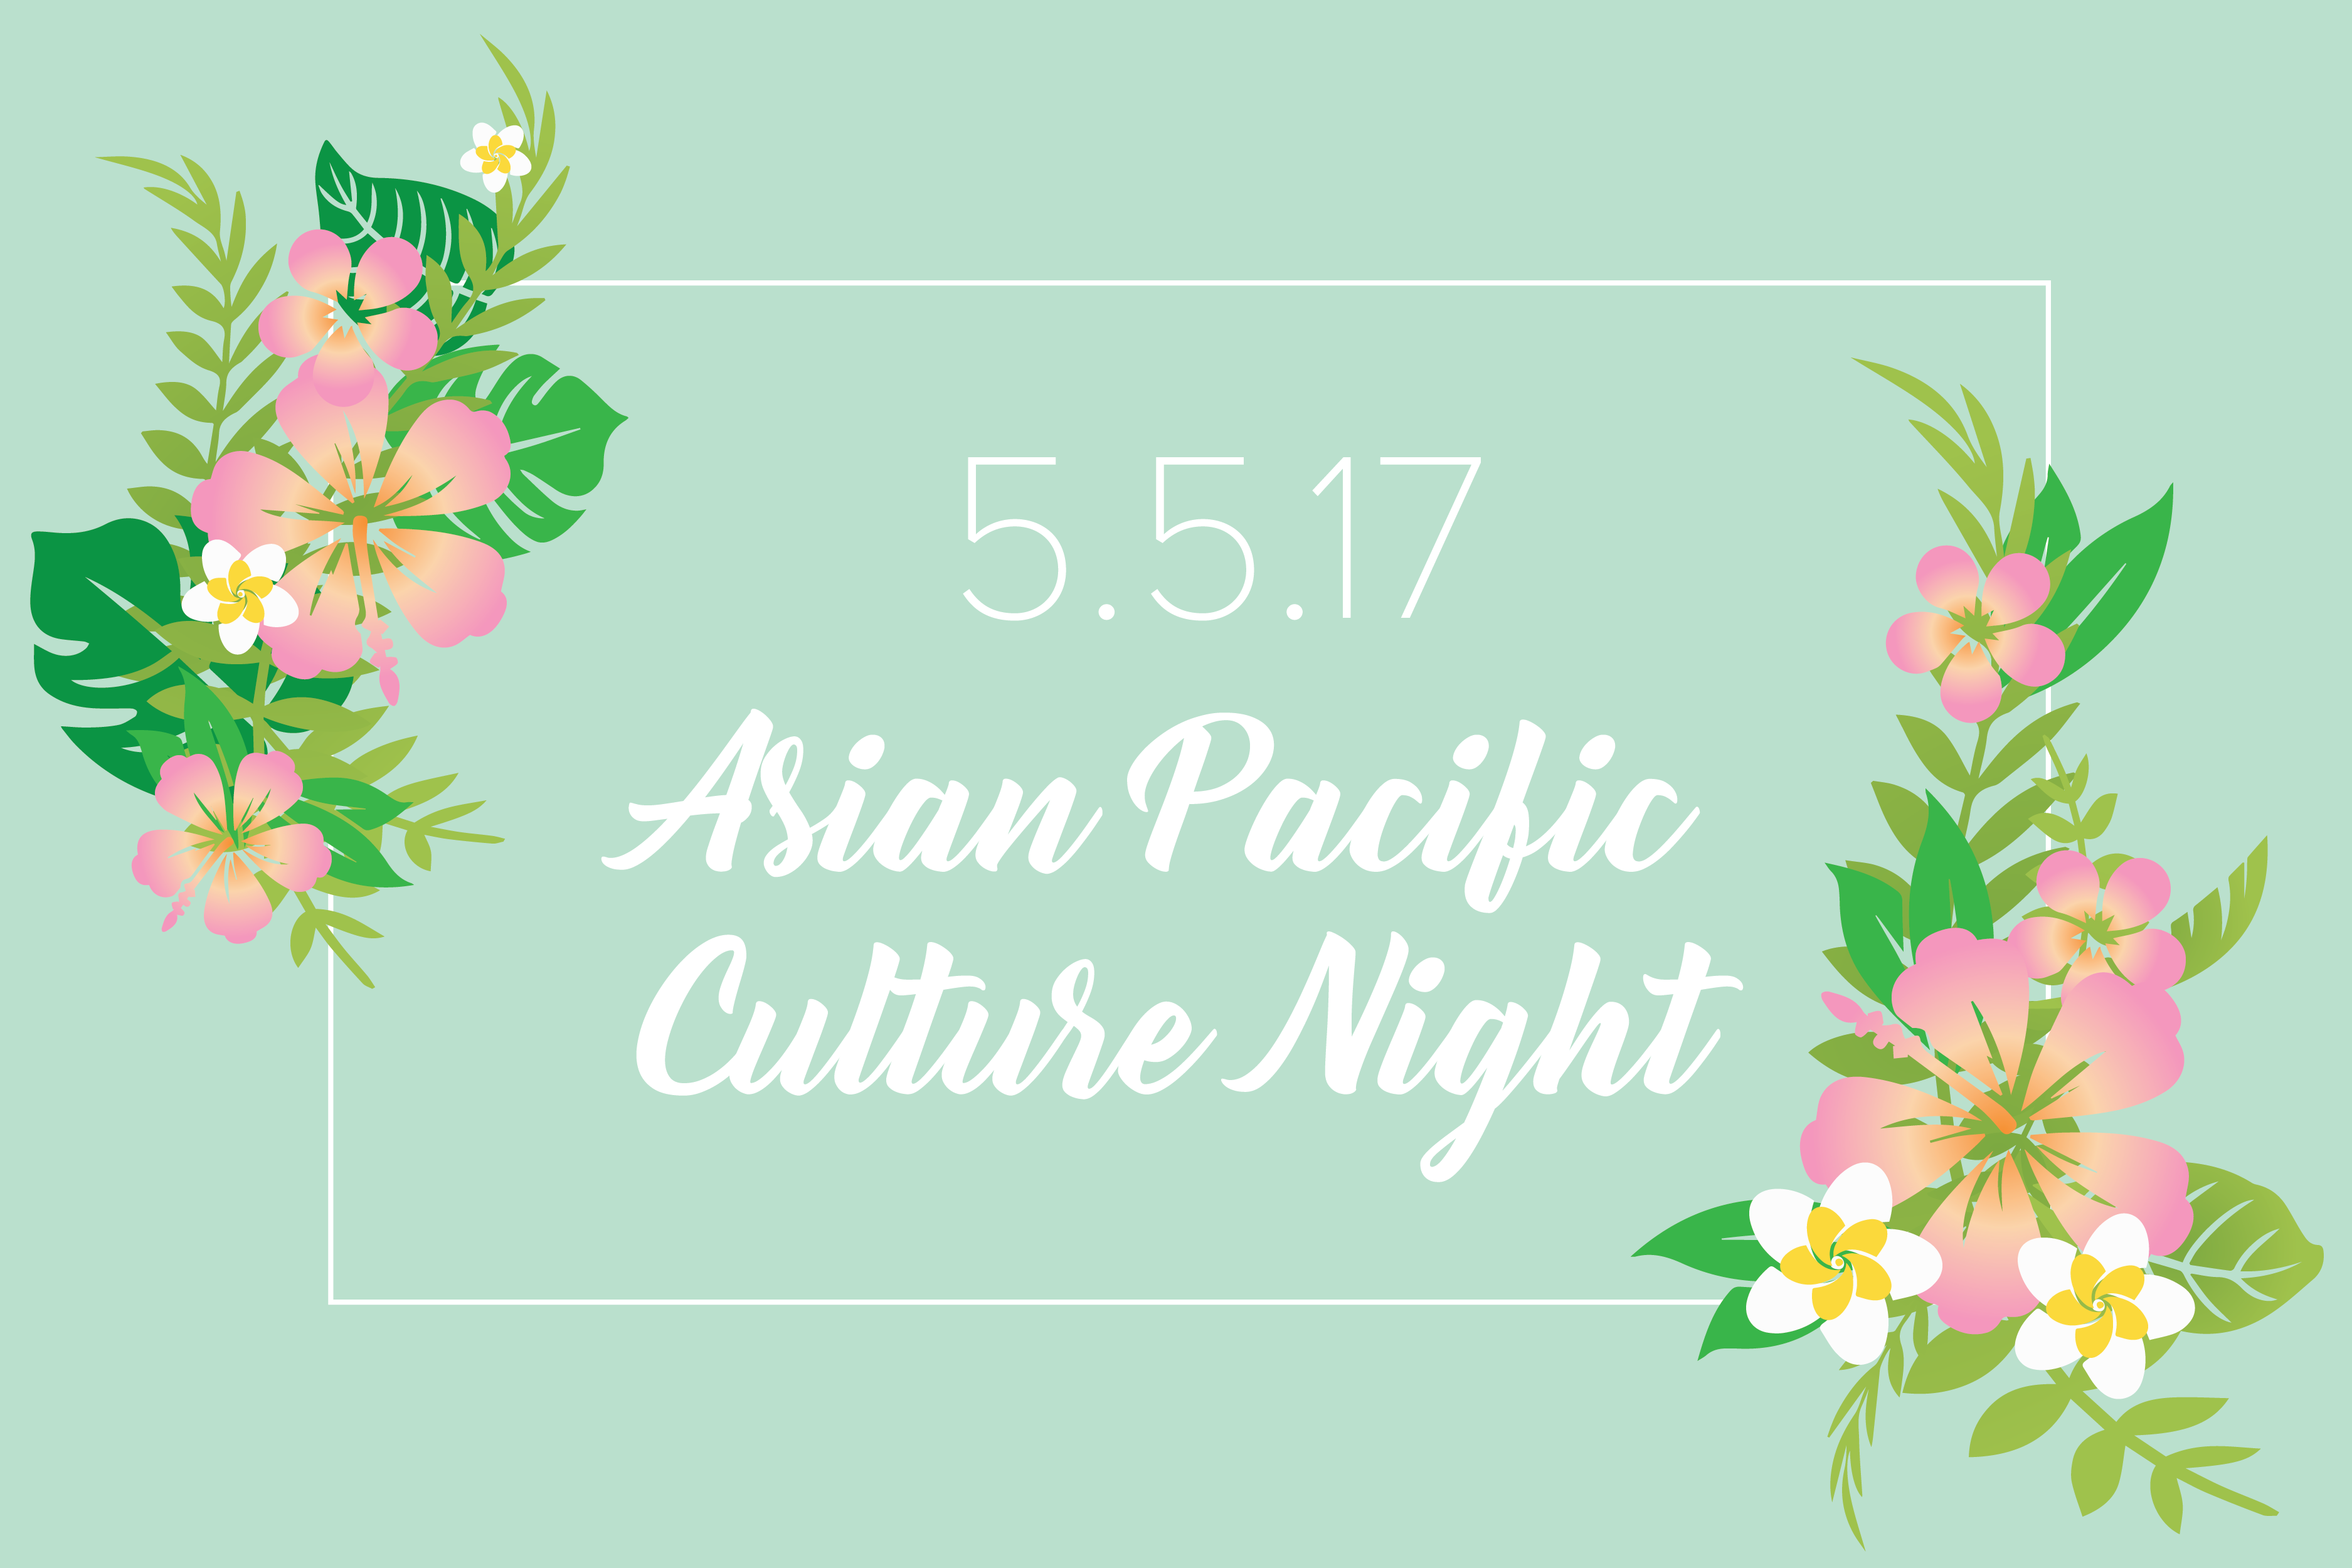 Cross Cultural Center Hosts Asian Pacific Culture Week